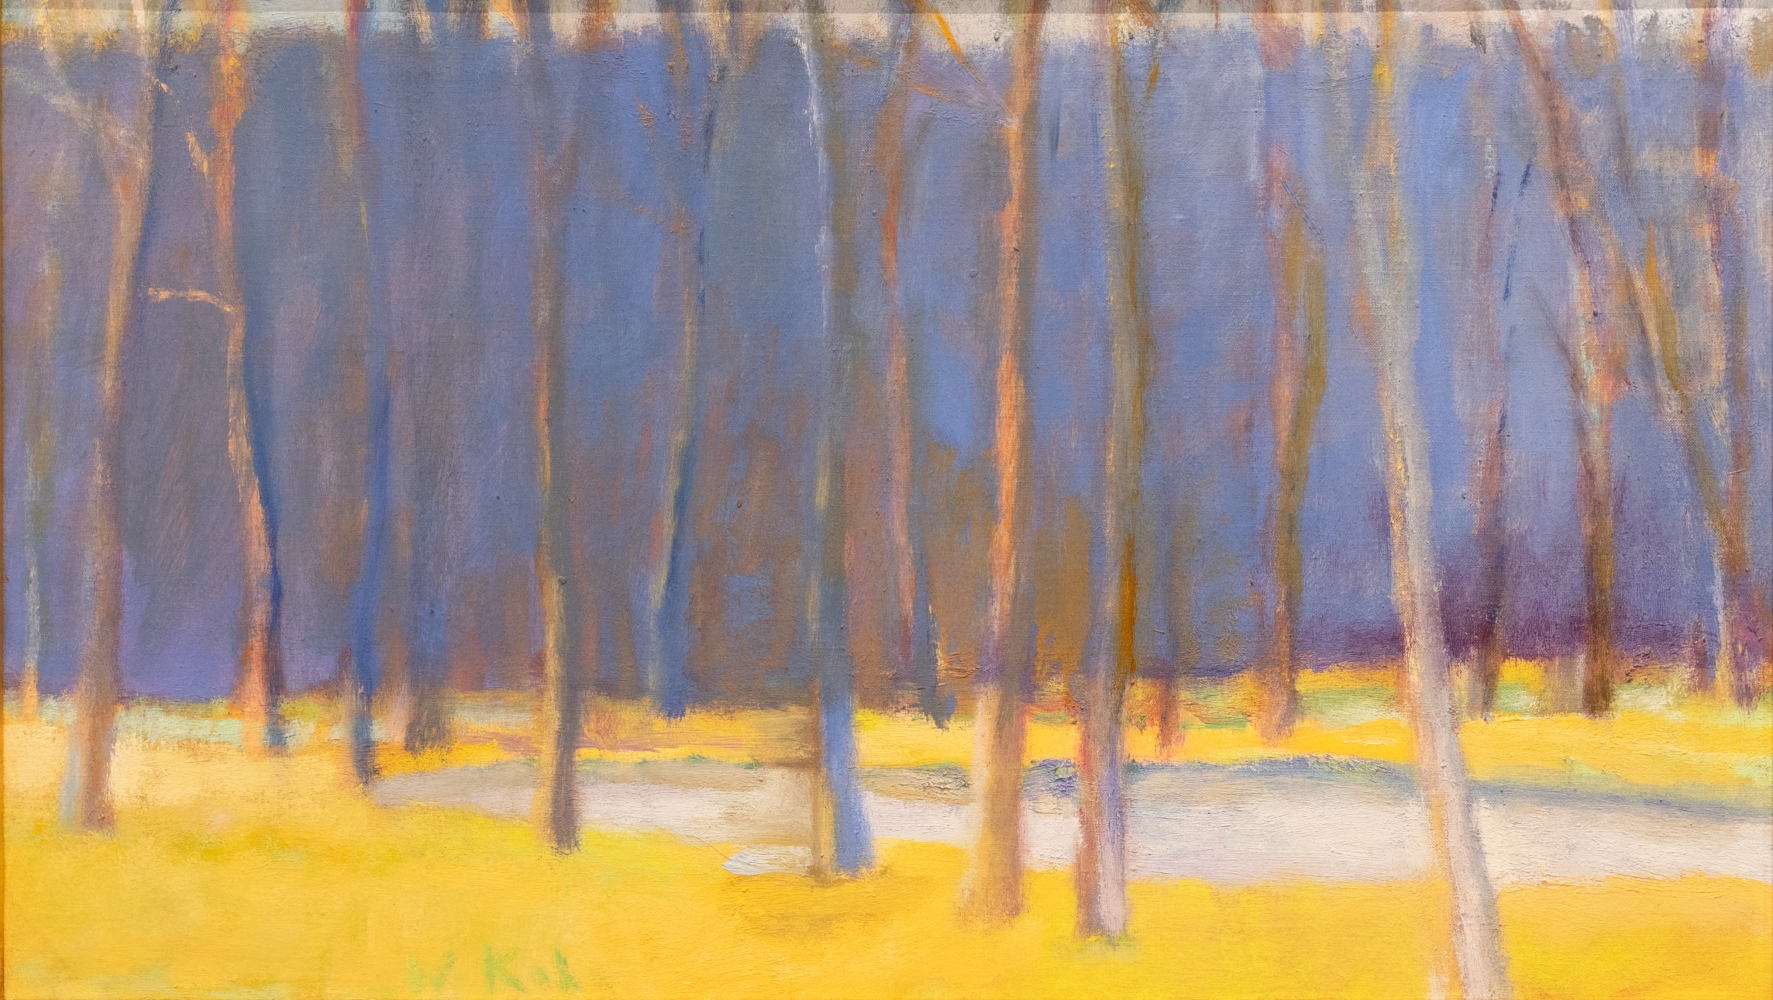 Wolf Kahn, A Study of Yellow and Purple, 1995, oil on linen, 16 x 28 inches, Wolf Kahn art for sale, Wolf Kahn Trees